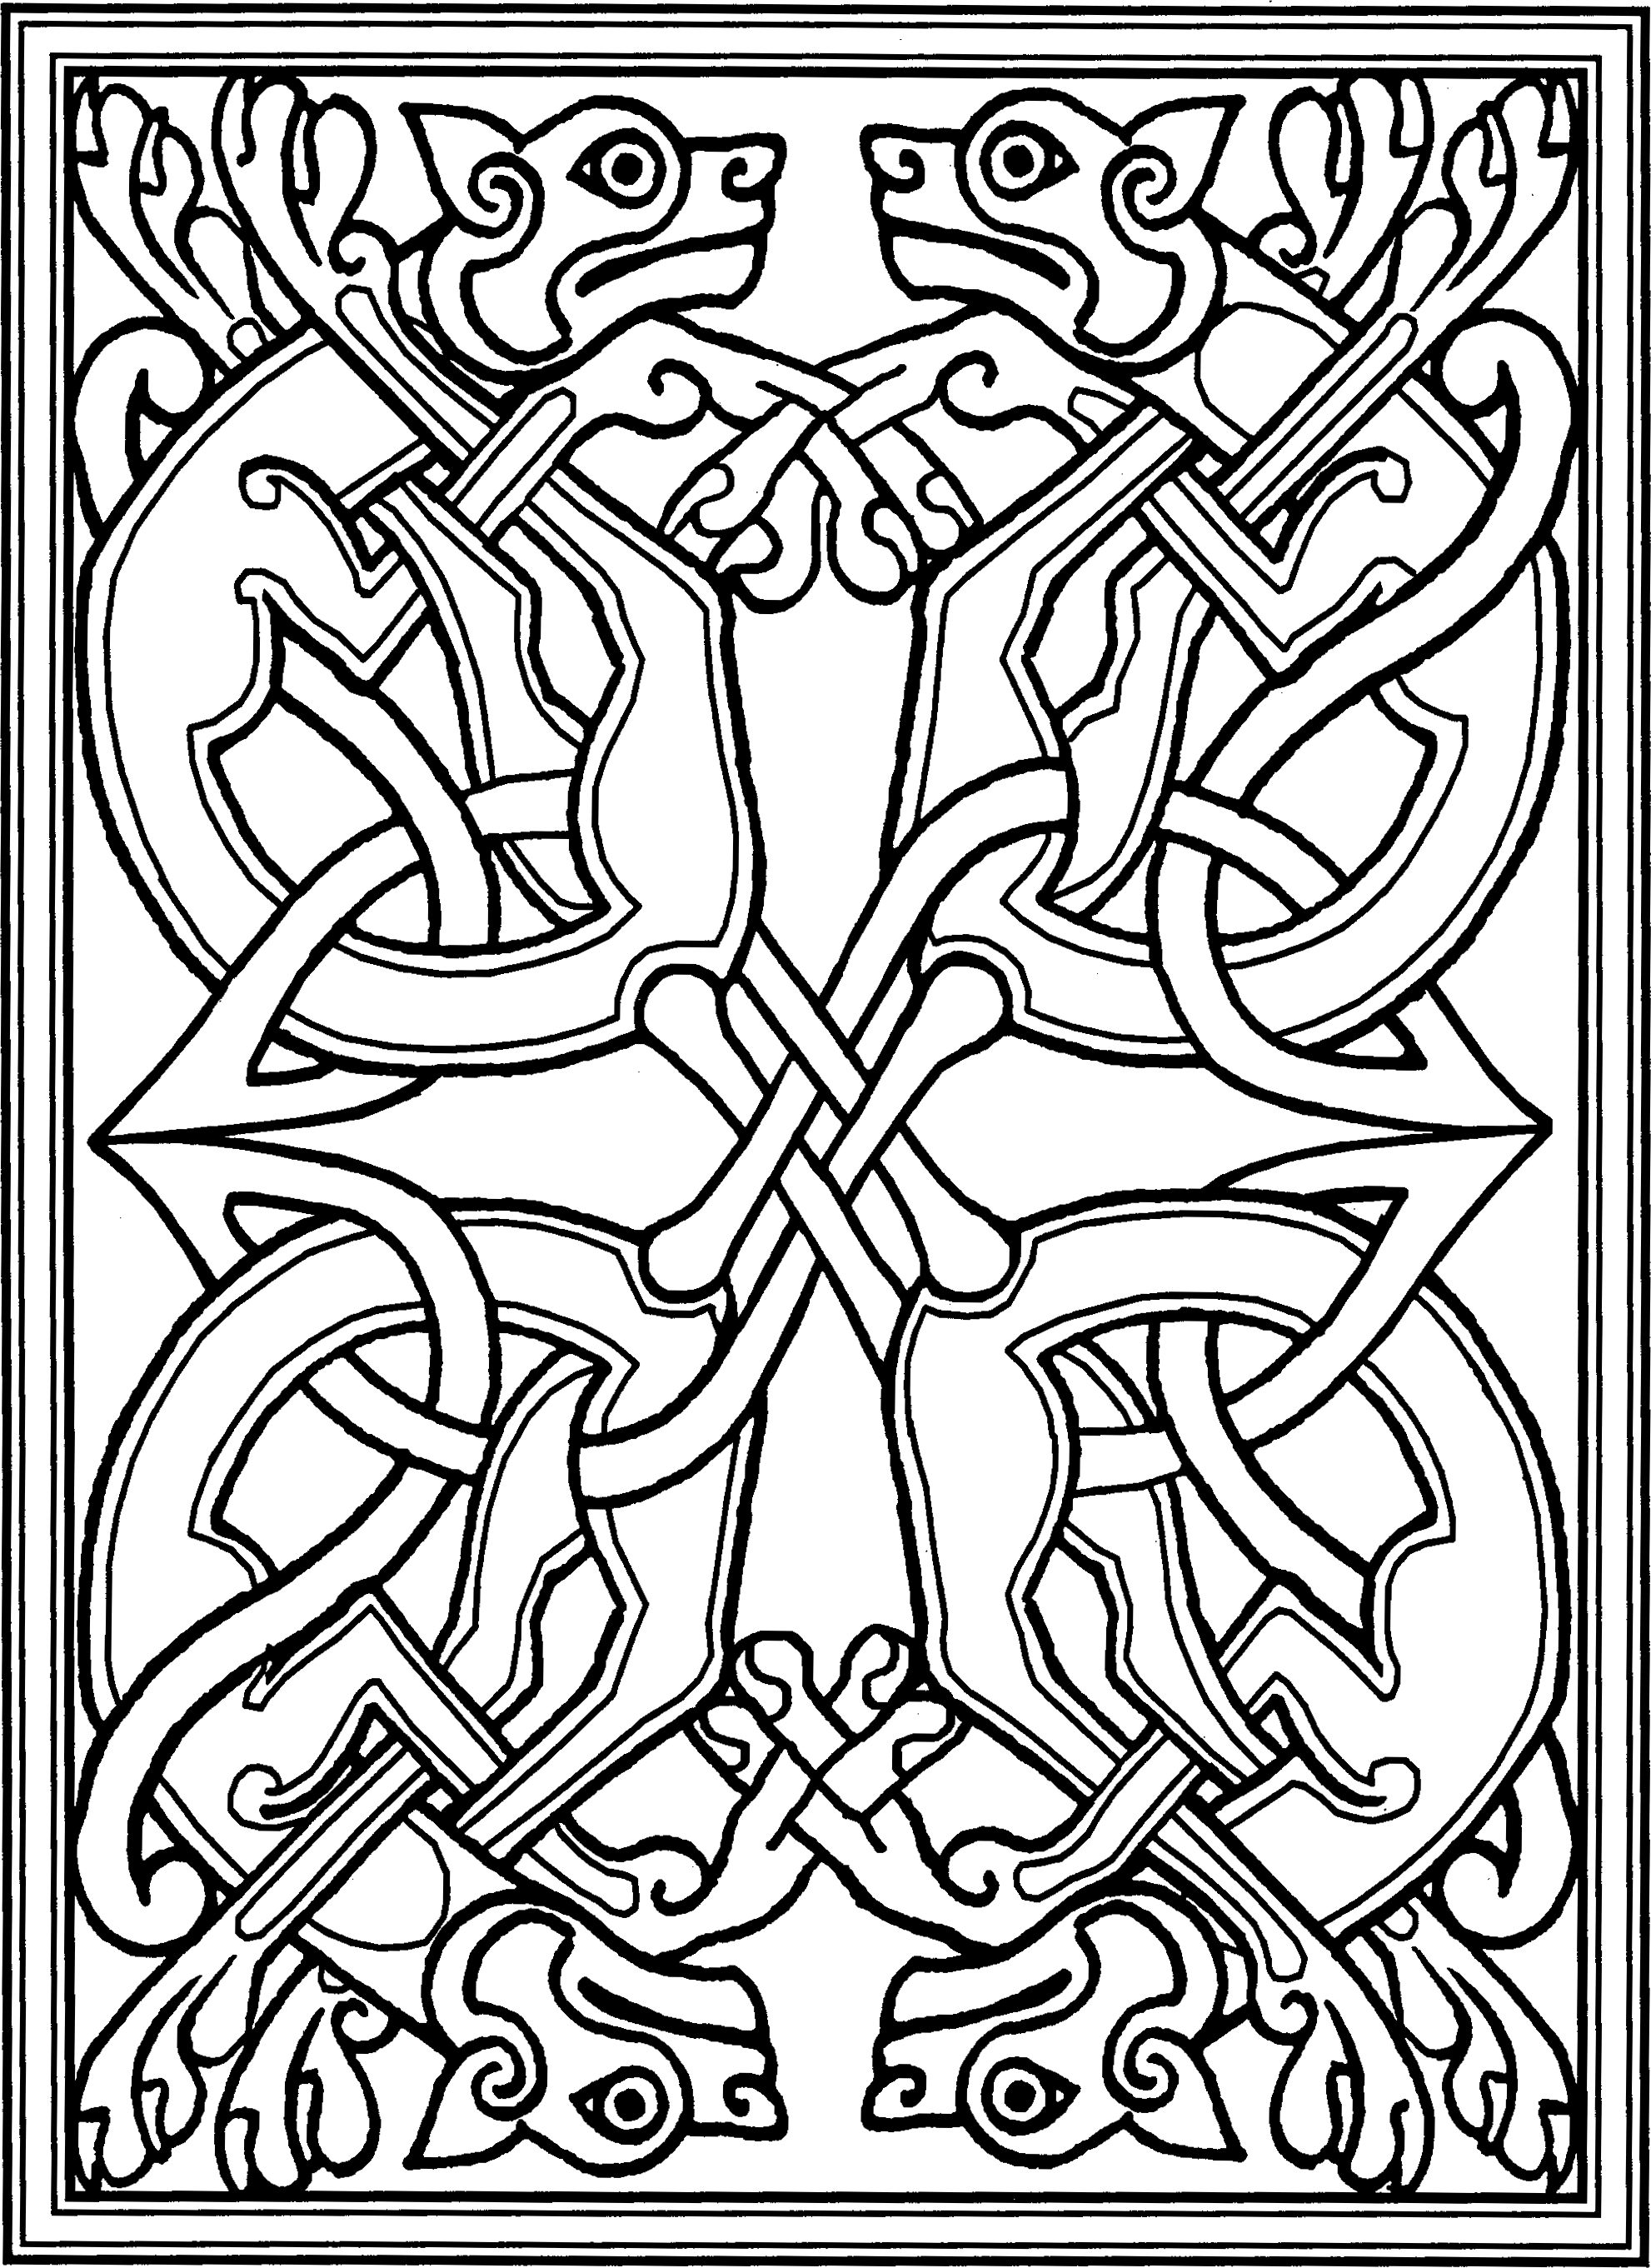 book of kells colouring pages free guatemala coloring pages at getcoloringscom free kells pages of book free colouring